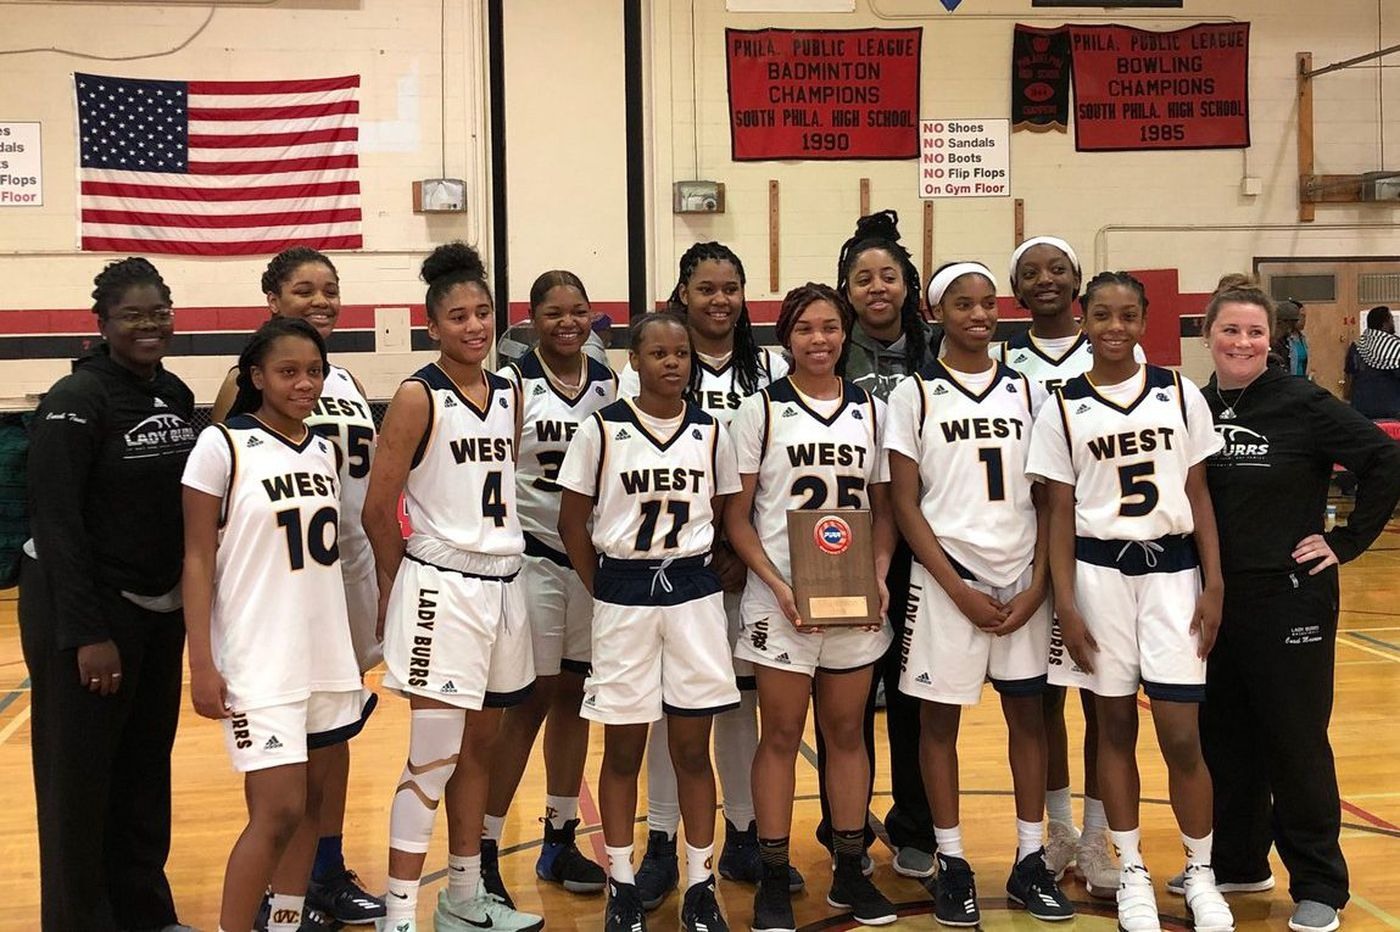 West Catholic girls basketball looks to finish improbable run with state title